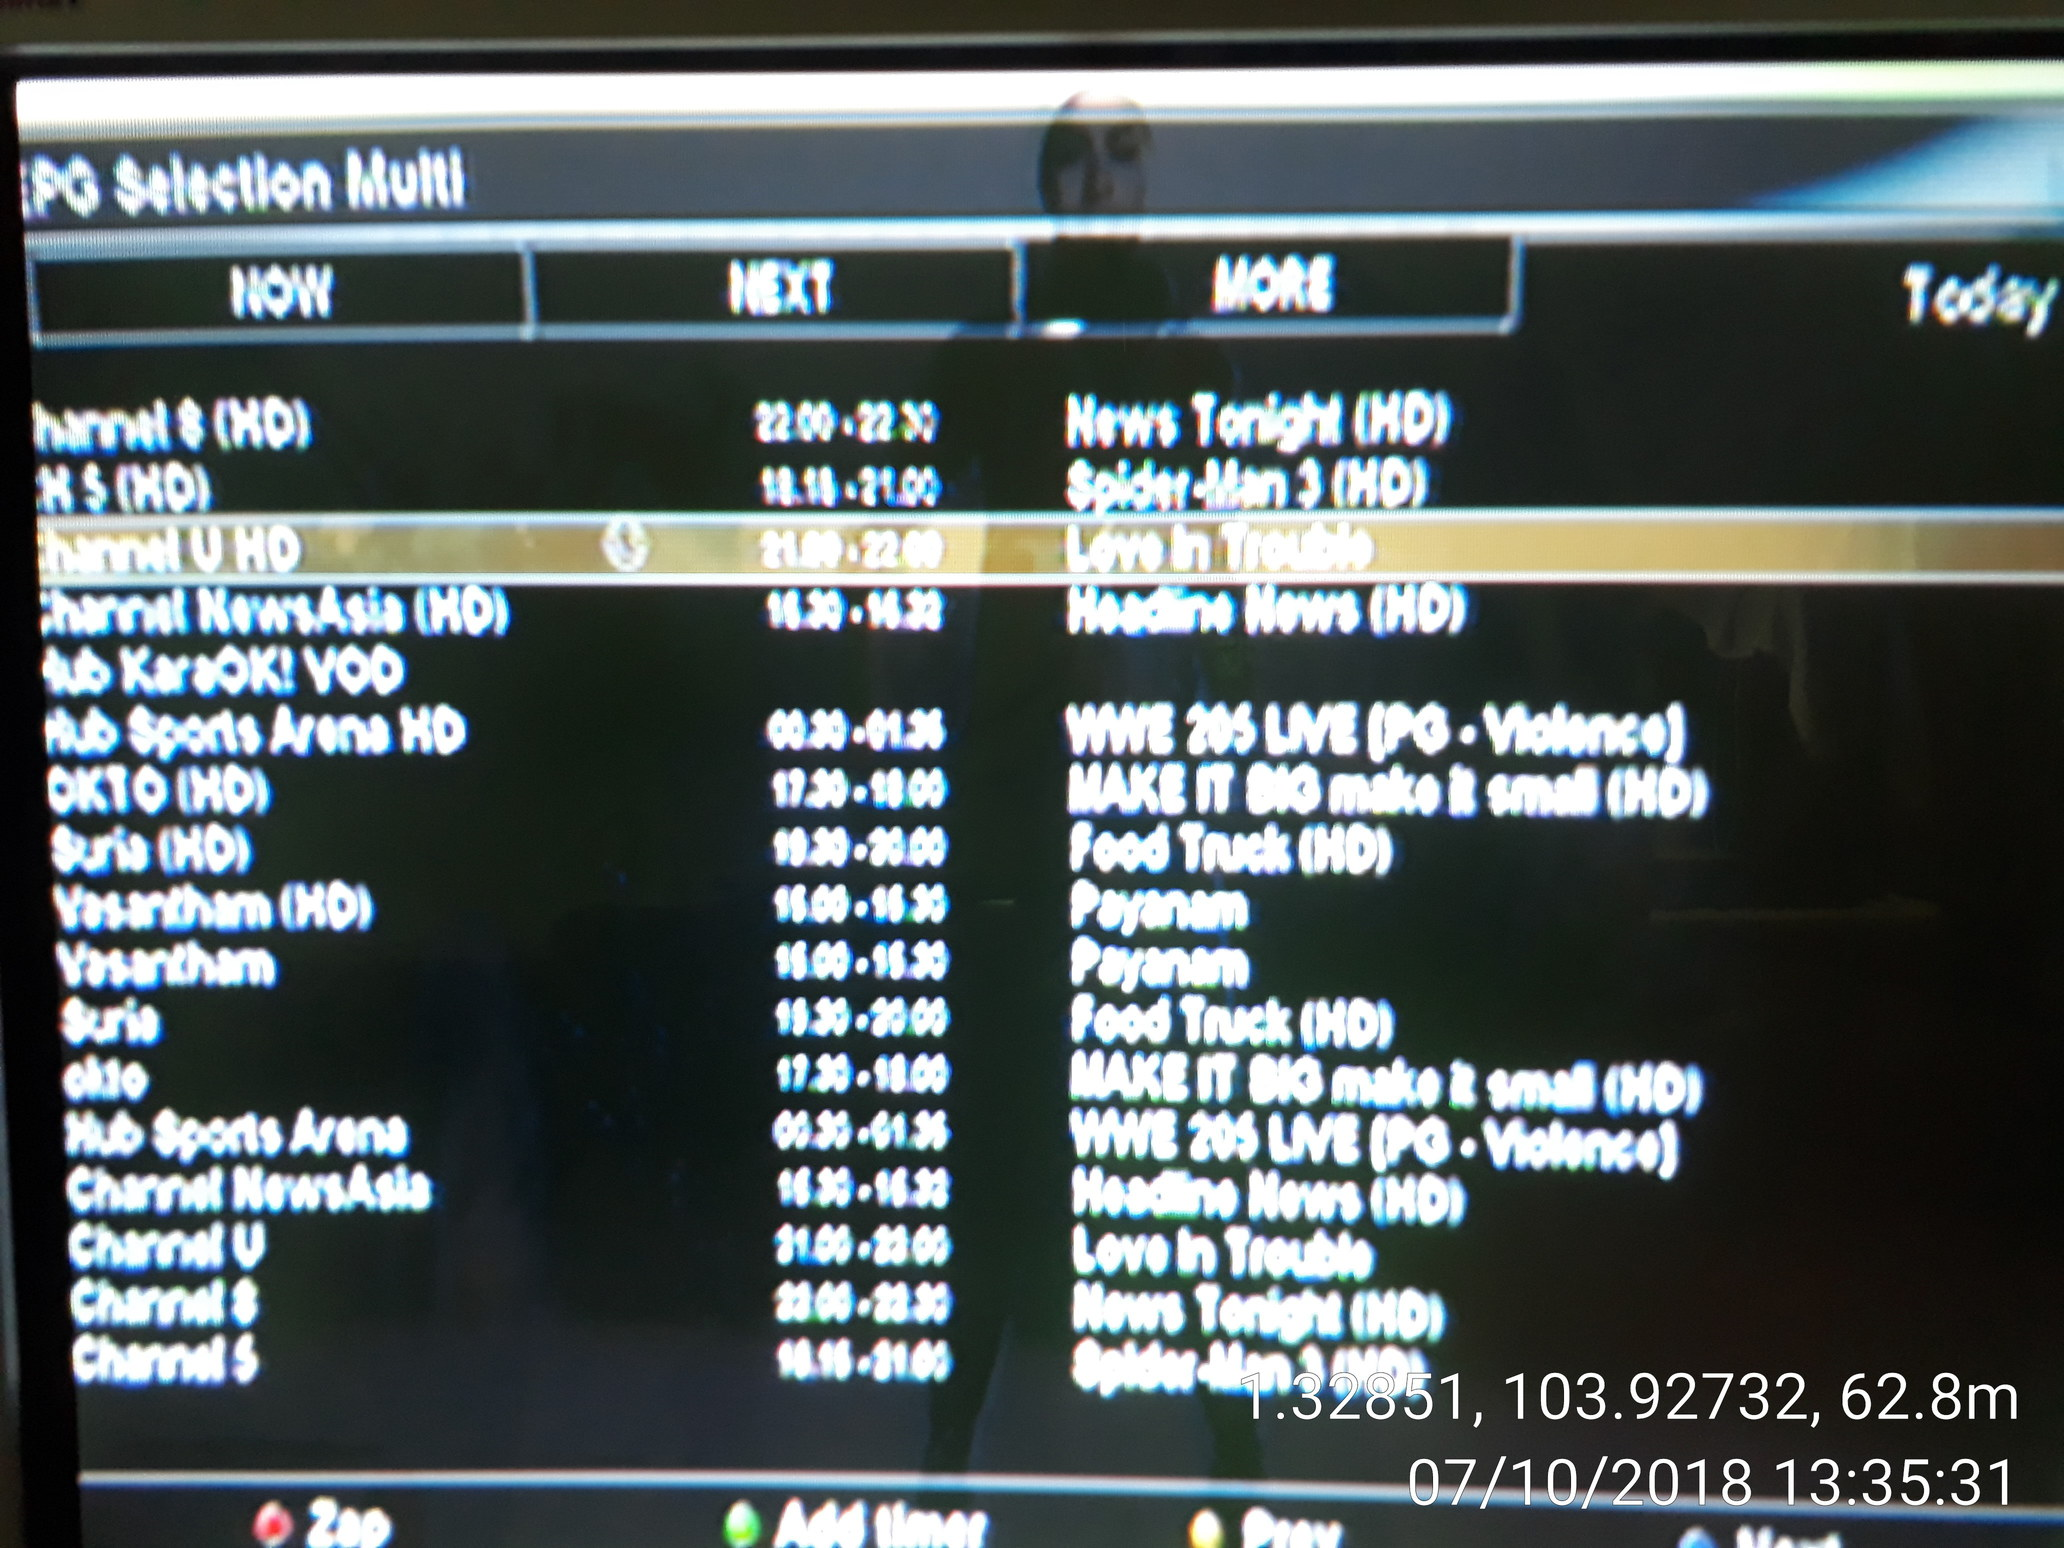 Series Title Appear In Funny Symbols In Epg Dm7020hd Newnigma